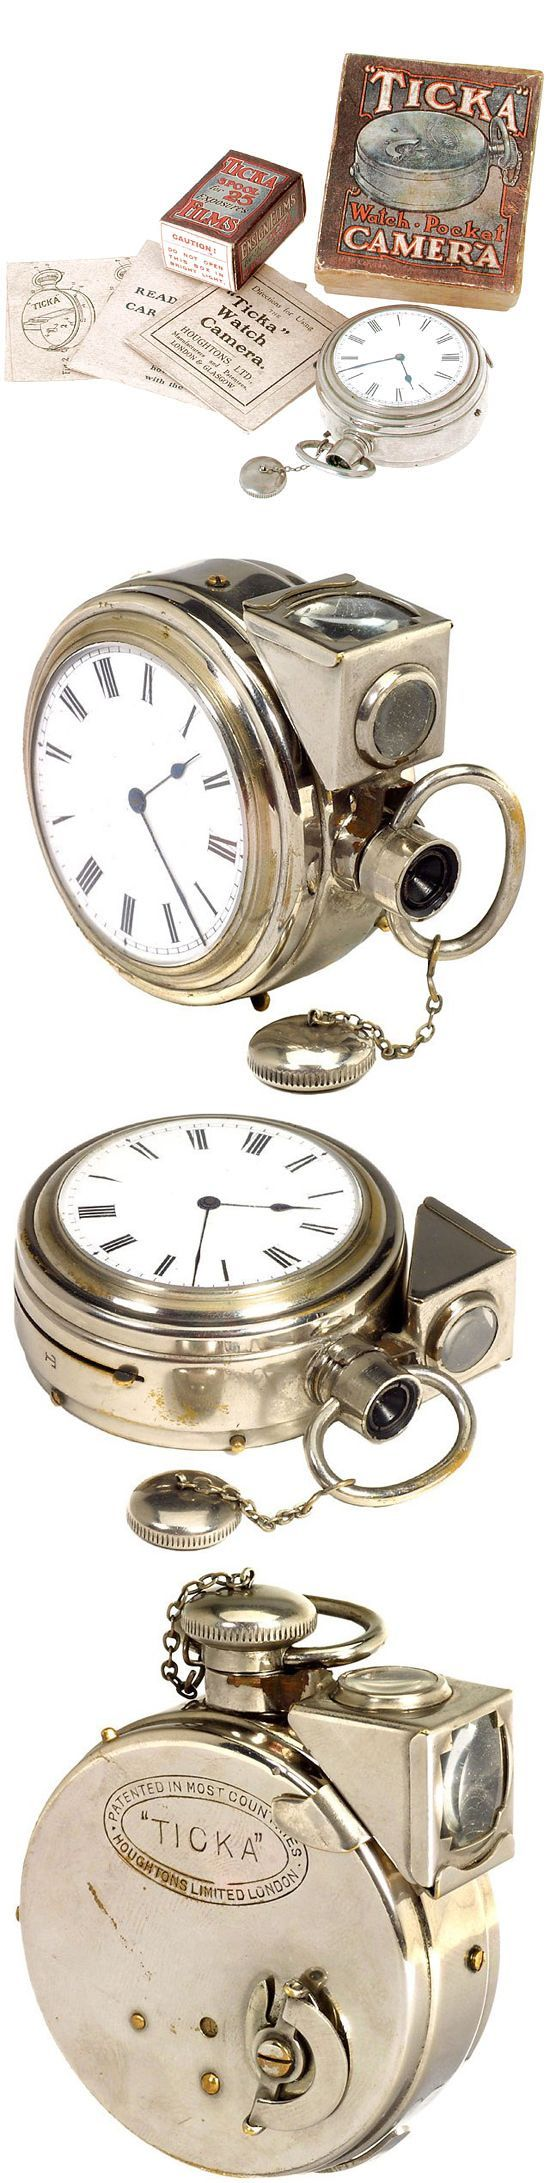 """The """"TICKA"""" Watch Camera c. early 1900's:"""